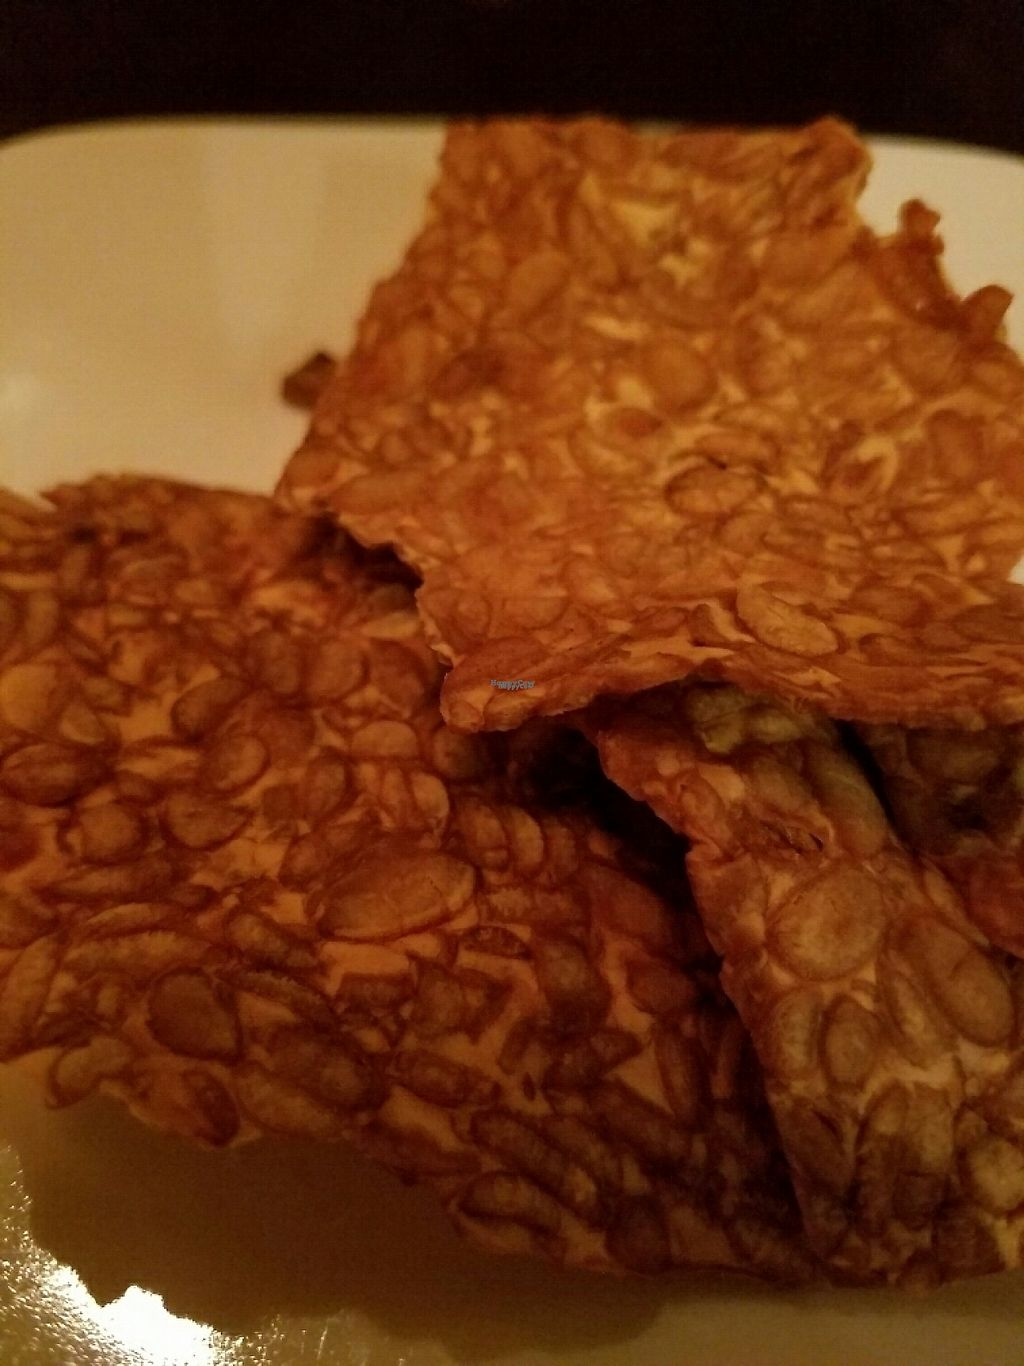 """Photo of Bandung Indonesian Restaurant  by <a href=""""/members/profile/andreathinks"""">andreathinks</a> <br/>House-made tempeh chips <br/> March 13, 2017  - <a href='/contact/abuse/image/23893/235789'>Report</a>"""